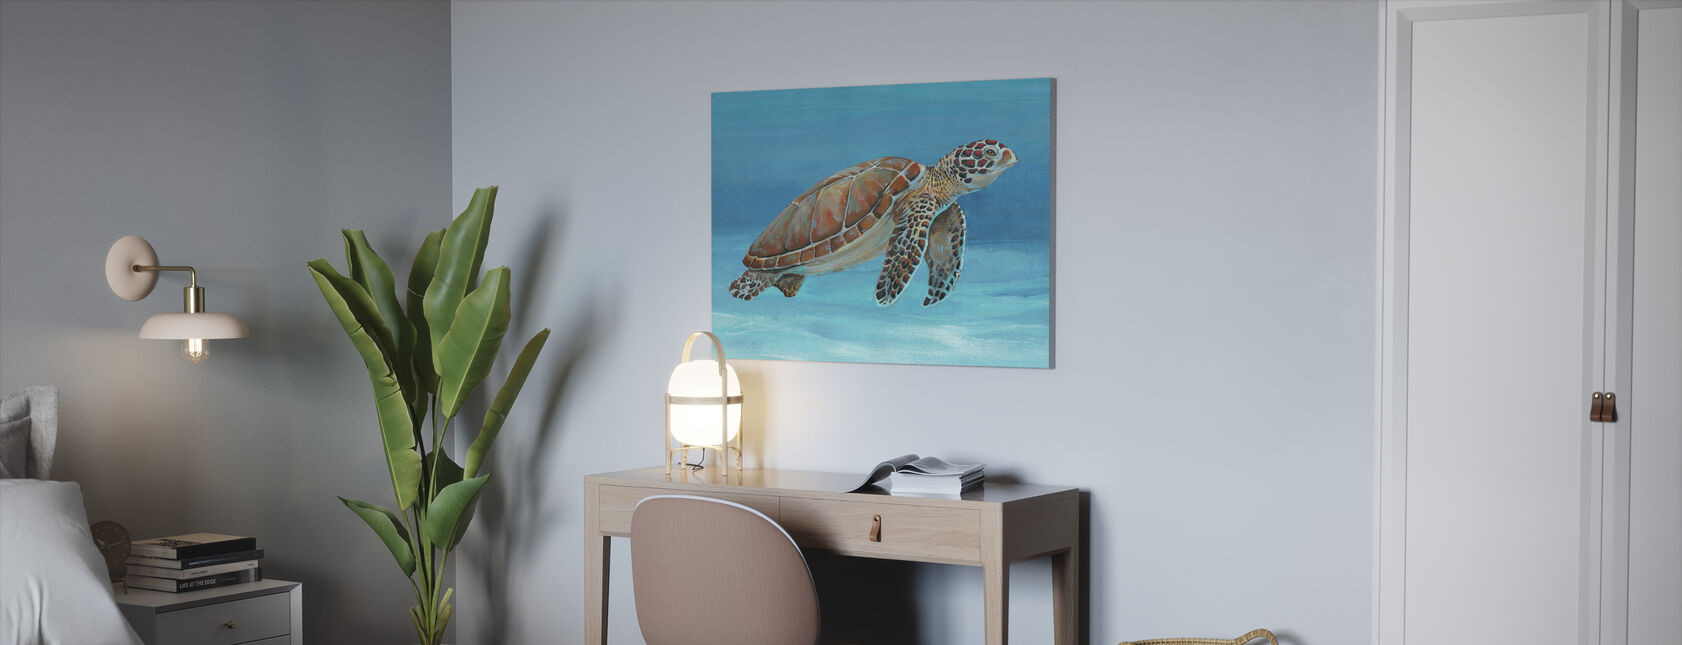 Ocean Sea Turtle - Canvas print - Office